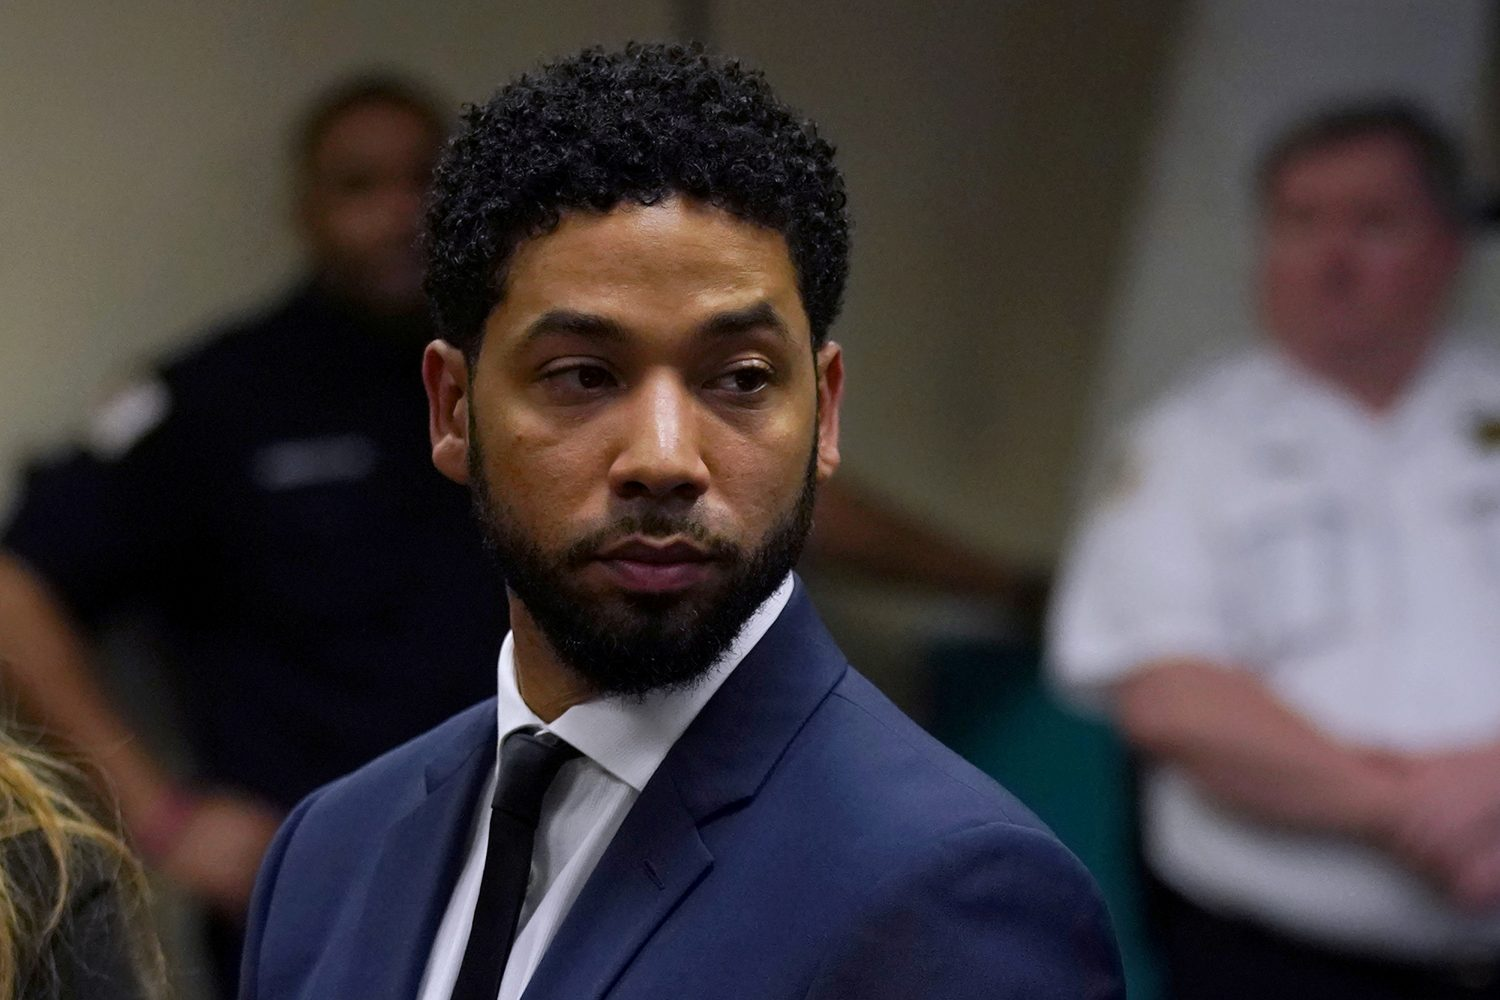 FILE PHOTO: Actor Jussie Smollett makes a court appearance at the Leighton Criminal Court Building in Chicago, Illinois, U.S., March 14, 2019. E. Jason Wambsgans/Chicago Tribune/Pool via REUTERS